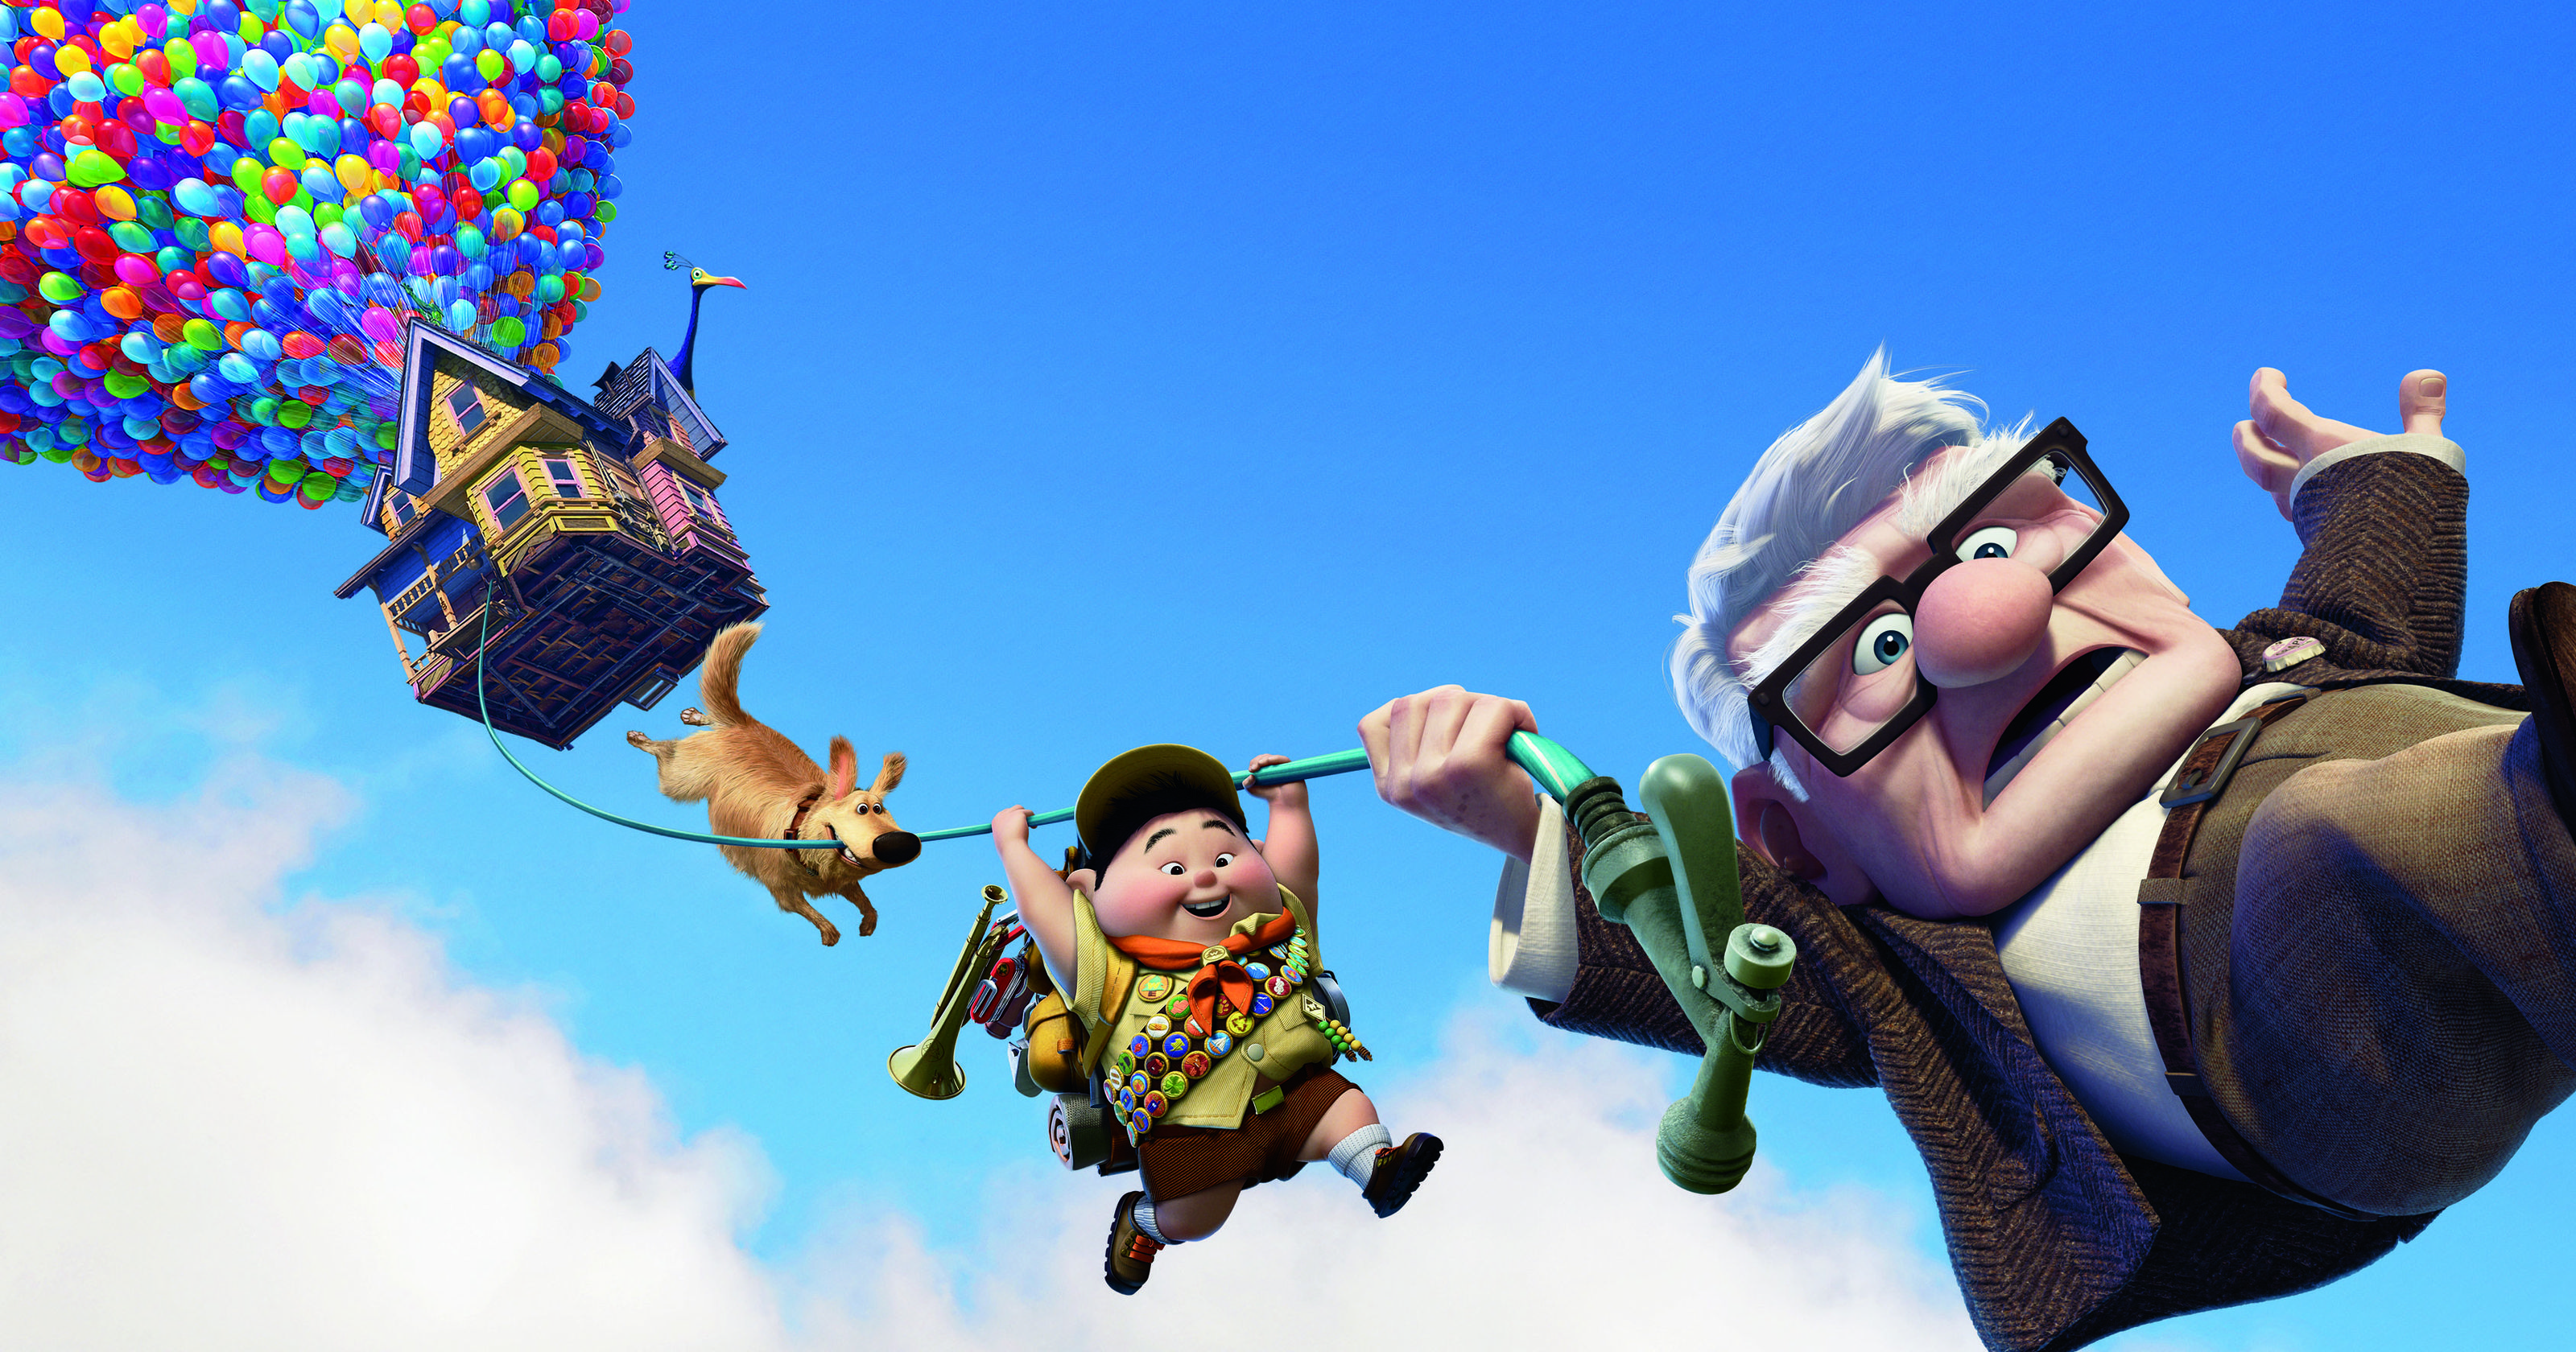 Amazing Up Pictures & Backgrounds